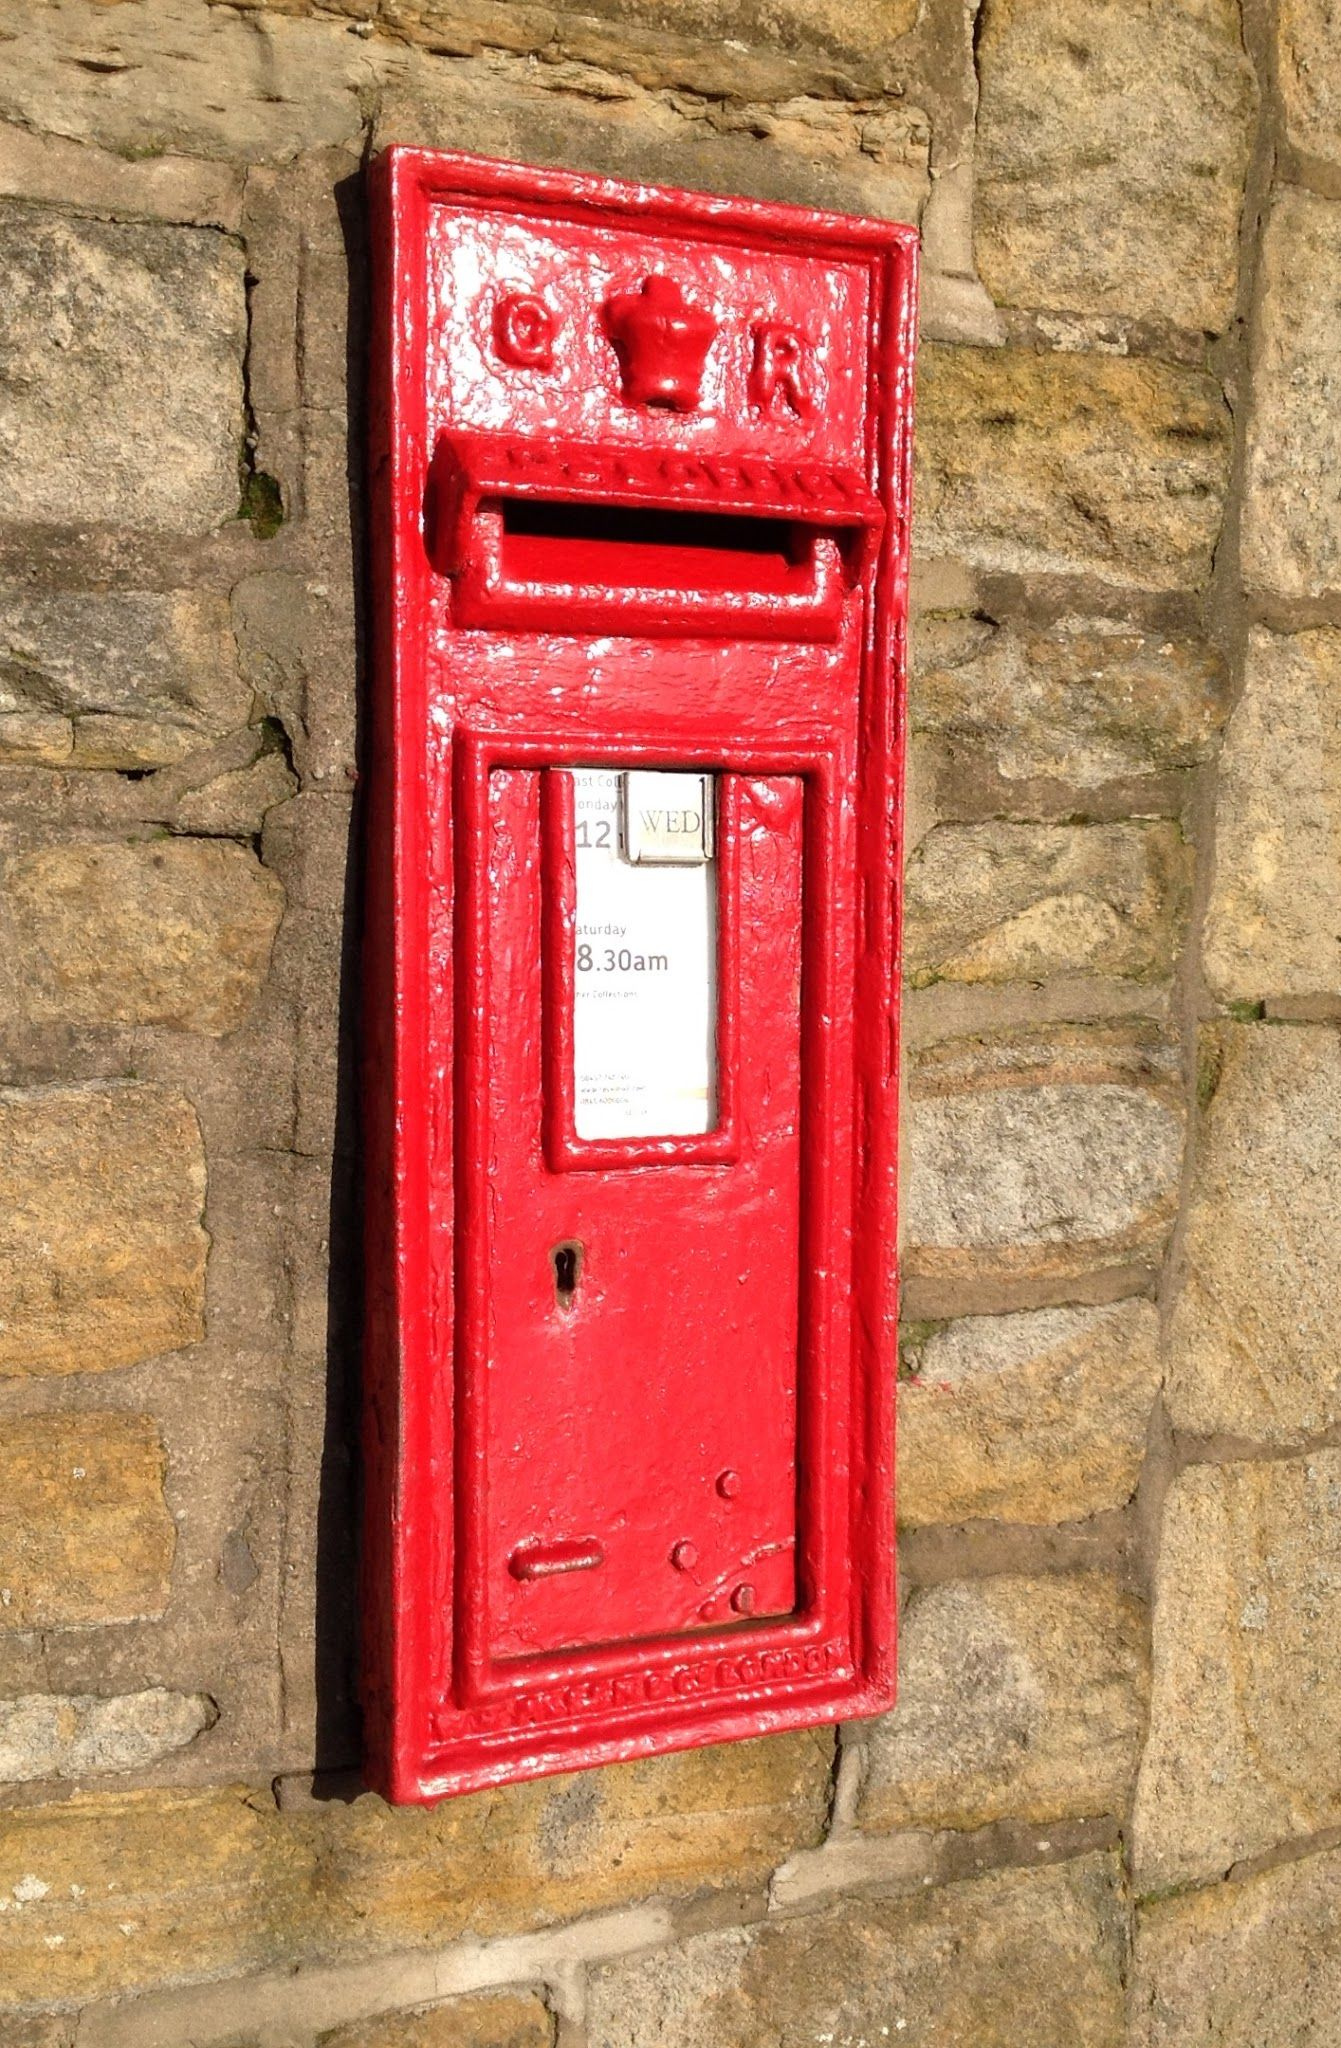 Pin By Kathy On Antique Mailbox Antique Mailbox Post Box Phone Box